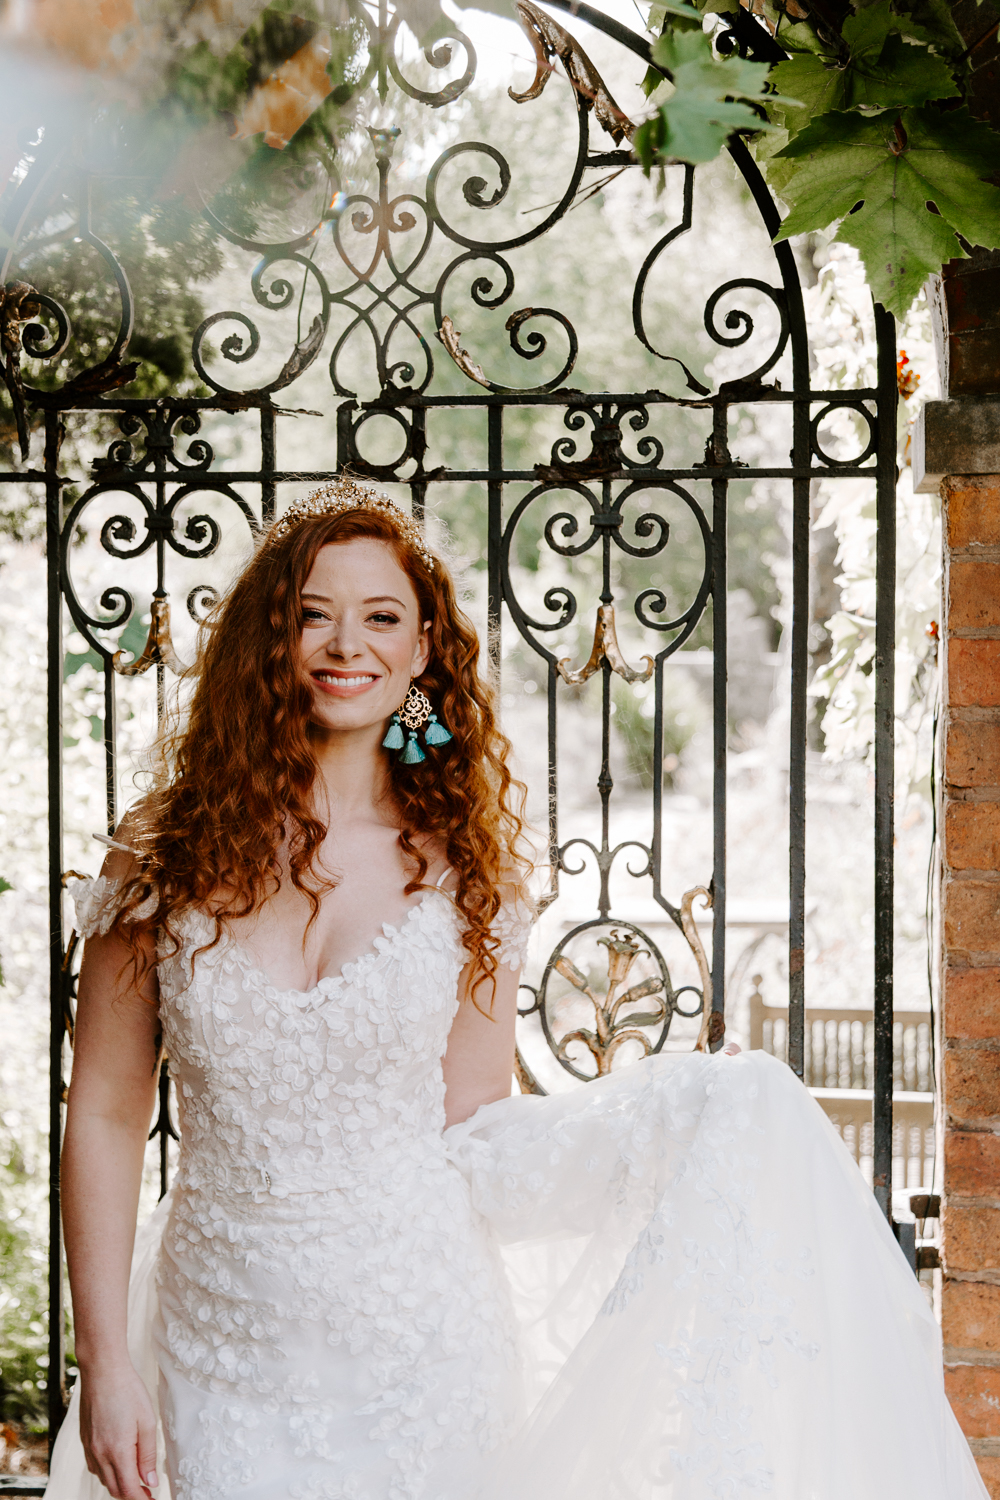 Red haired bride at Walcot Hall wedding venue